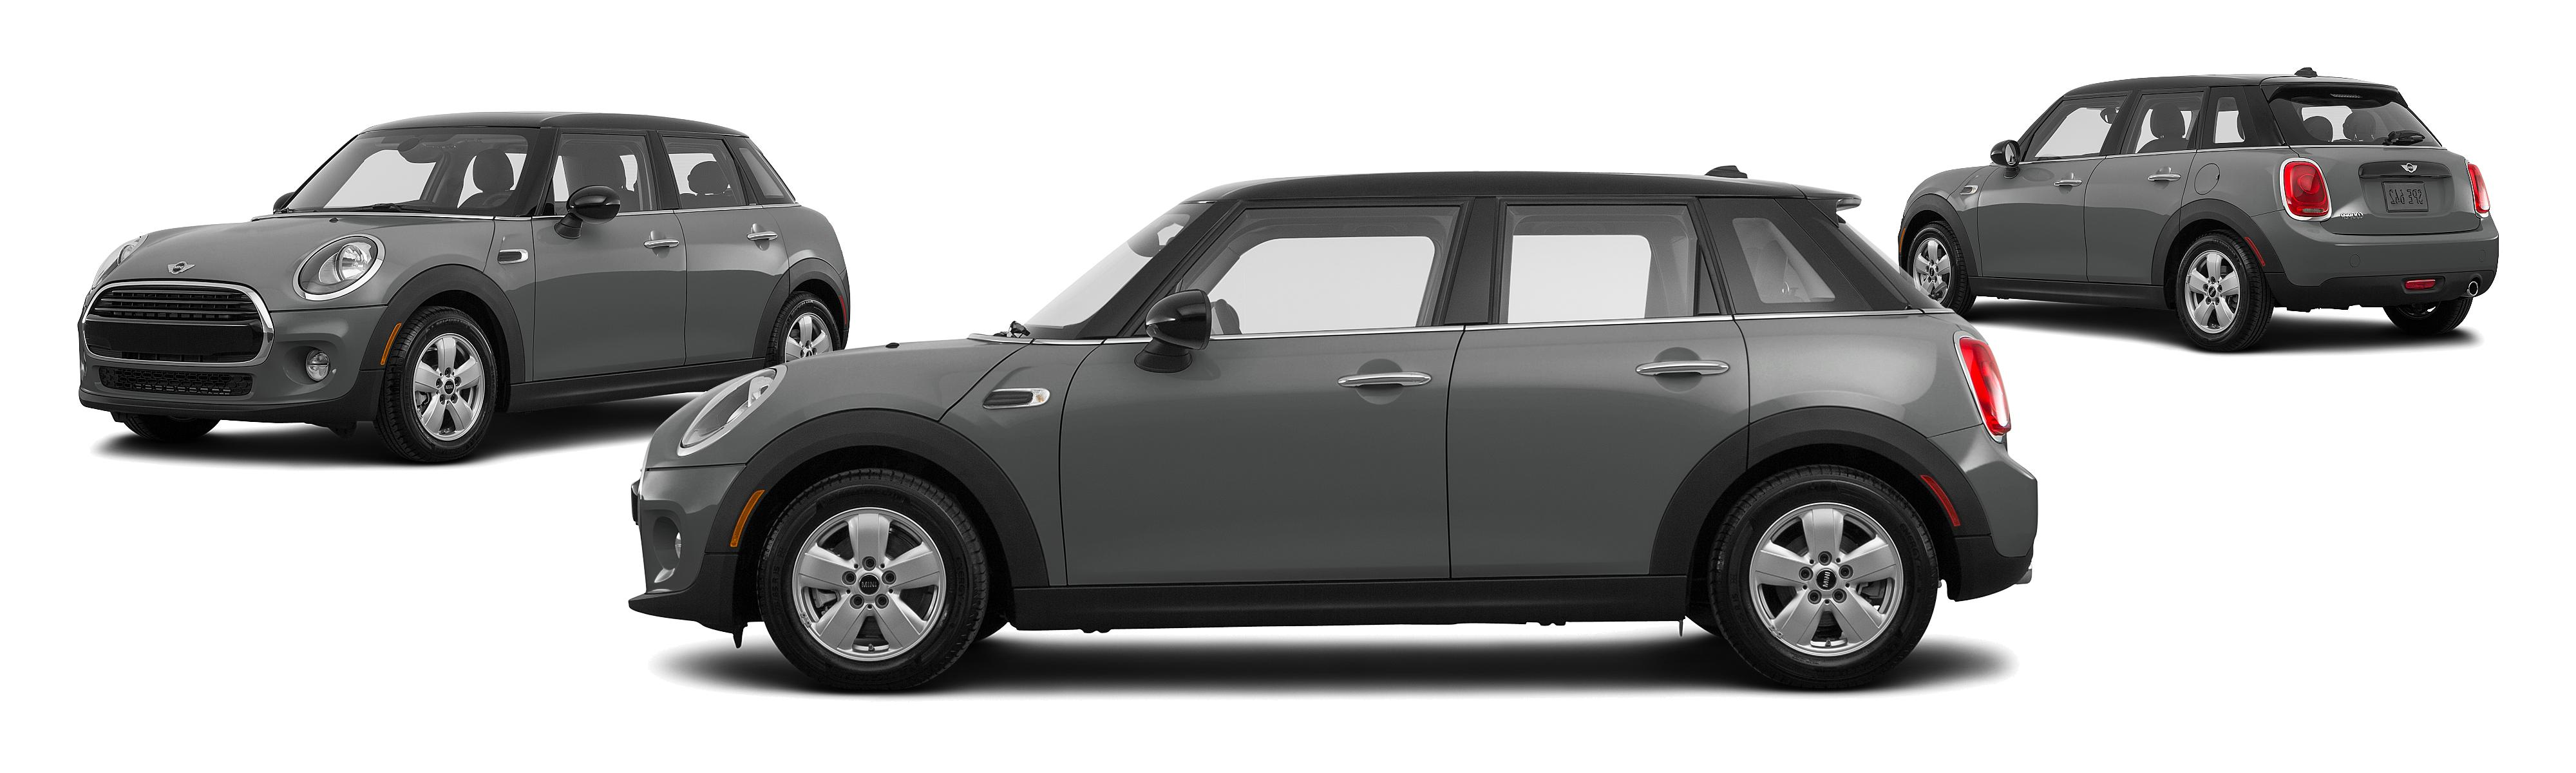 hardtop door mini cooper pin s in dual glass sunroofs